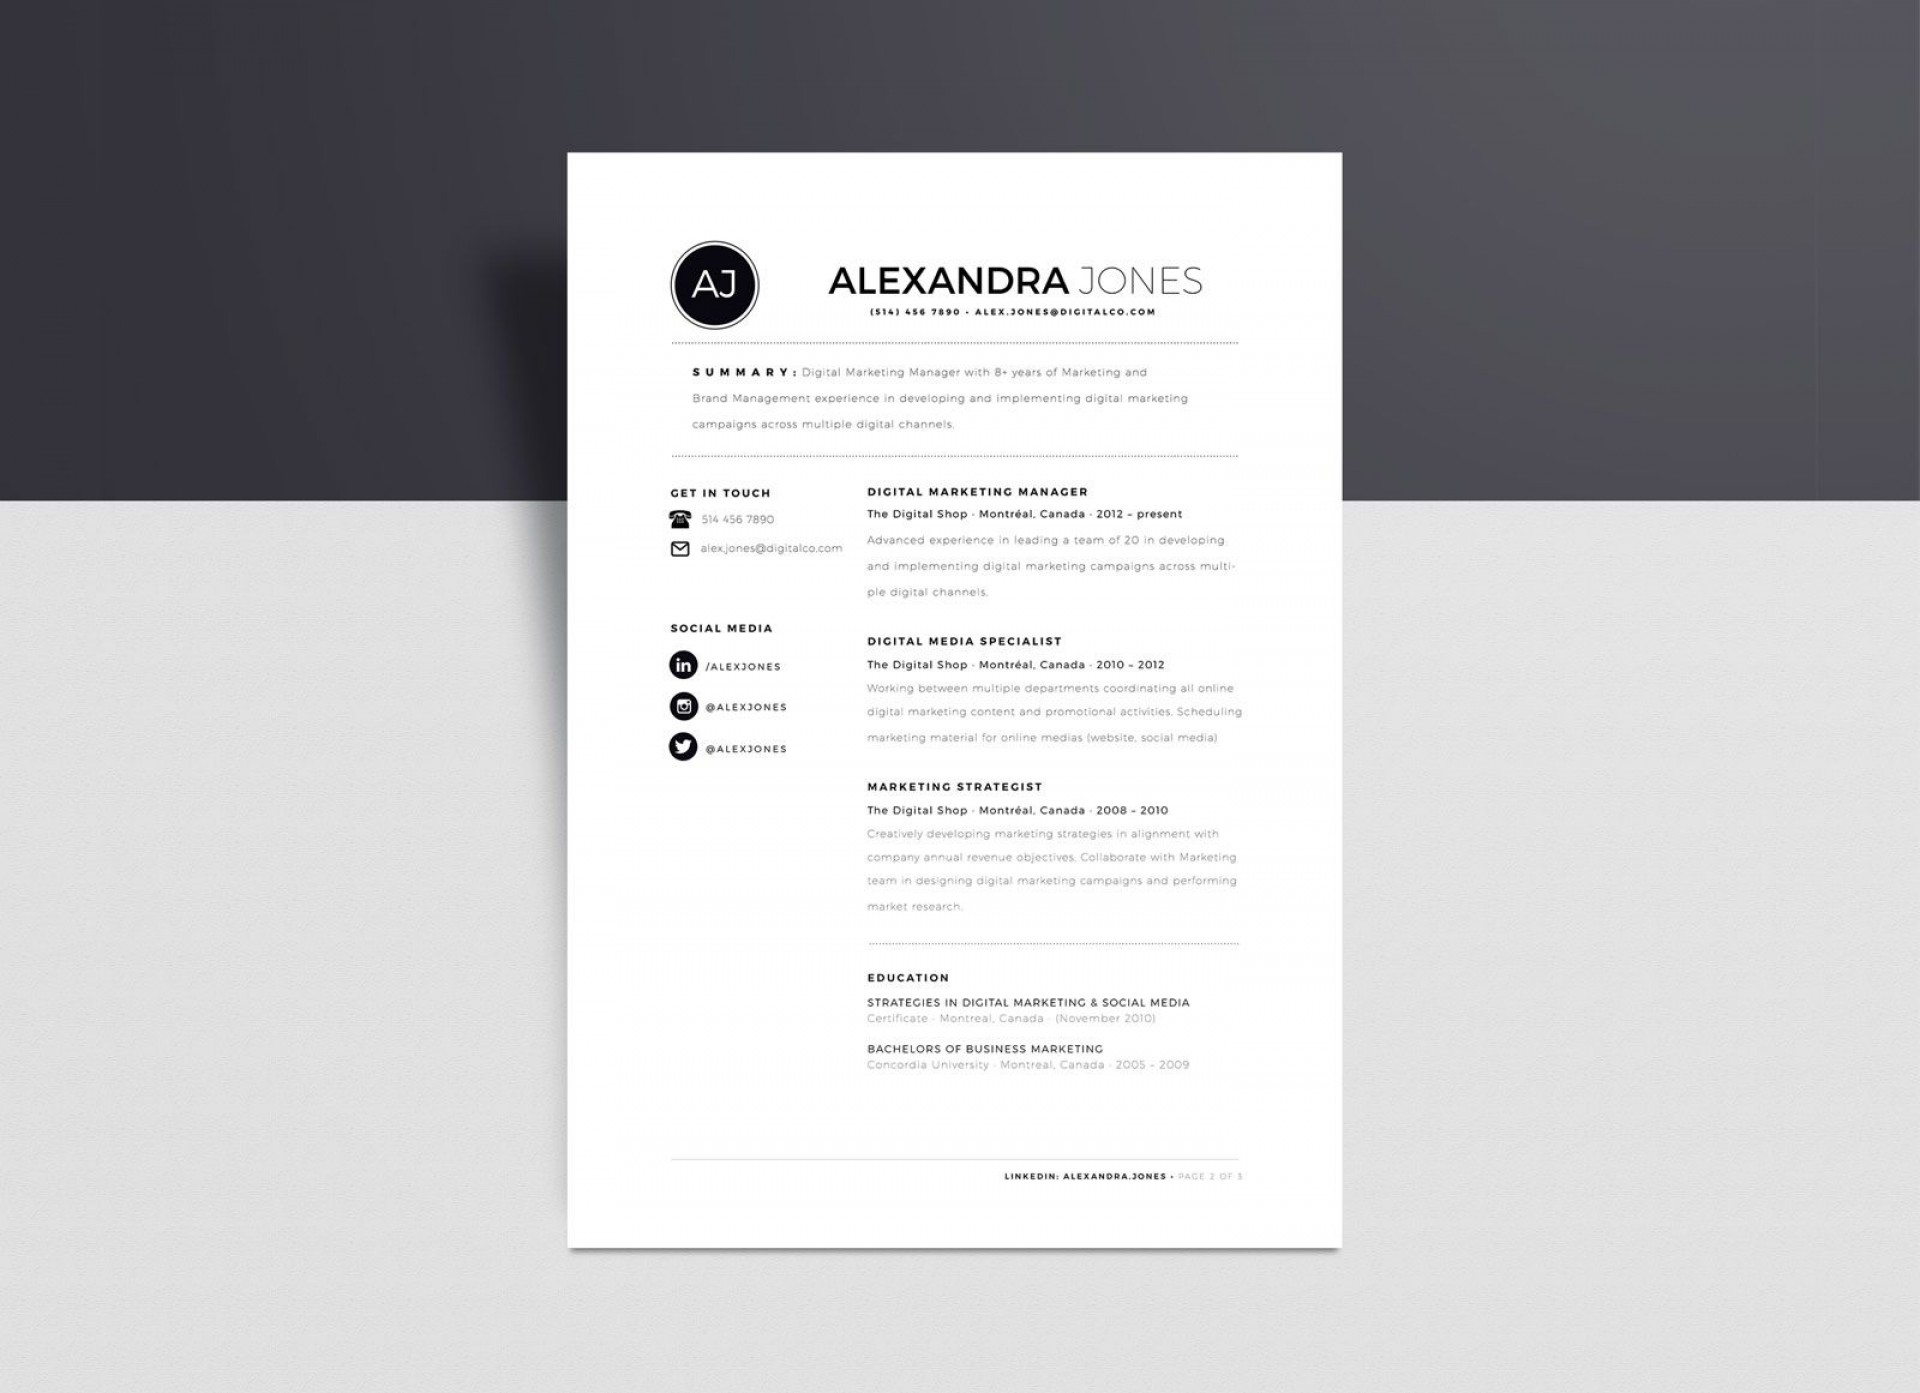 003 Stunning Resume Template Free Word Highest Clarity  Download 2020 Cv1920